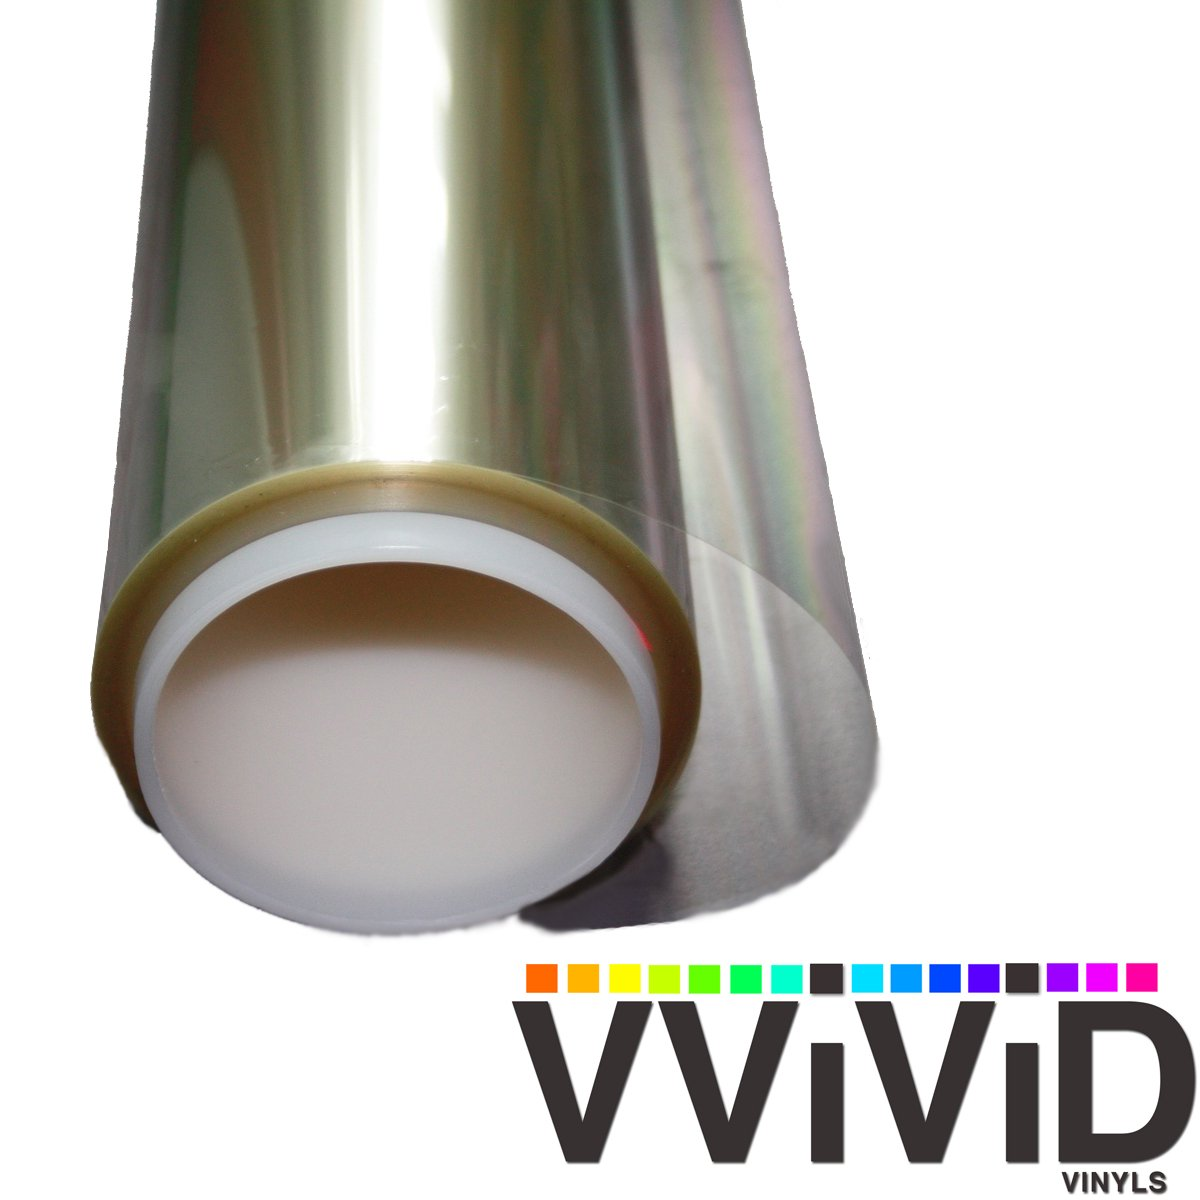 VViViD Clear Protective 4mil Vinyl Window Glass Wrap Shatterproof Security Film Roll (60 Inch x 60 Inch) by VViViD